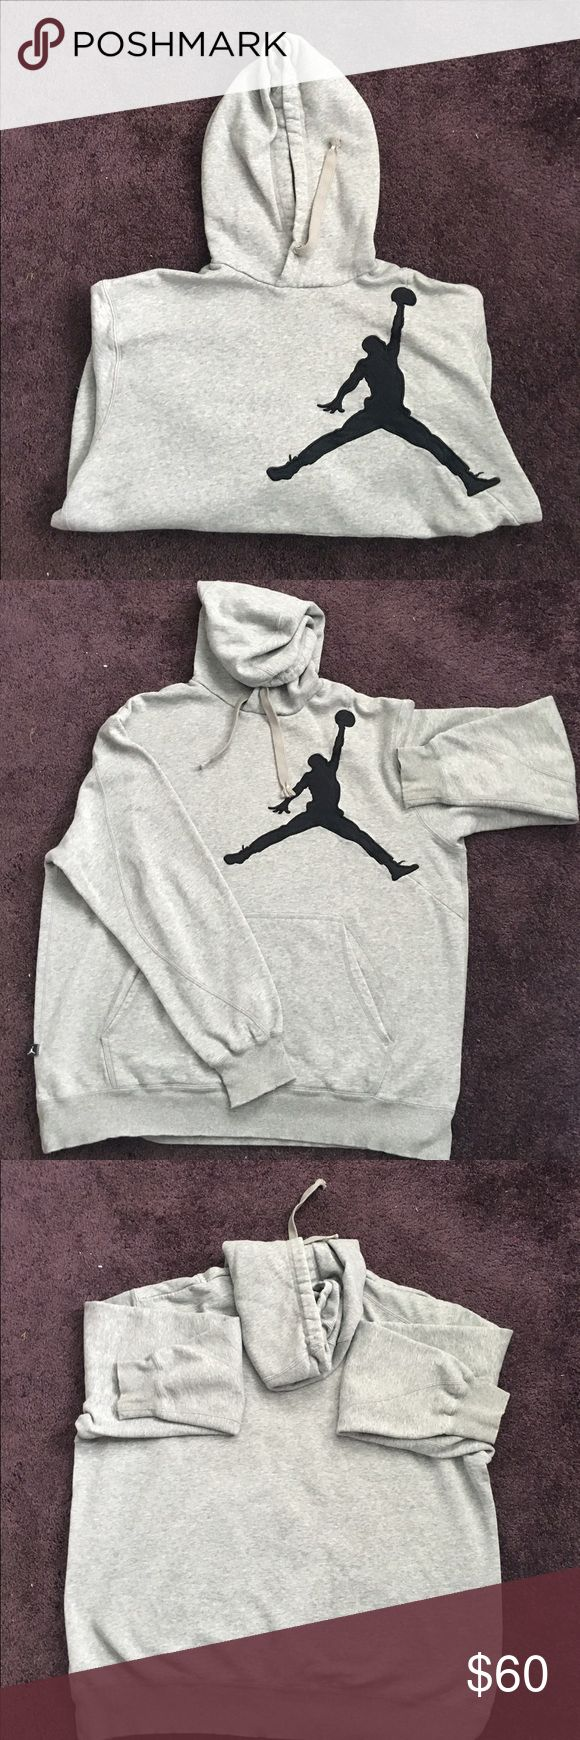 Nike Air Jordan sweatshirt Comfy Nike Air Jordan sweatshirt with pocket and drawstring. Great condition. Nike Shirts Sweatshirts & Hoodies